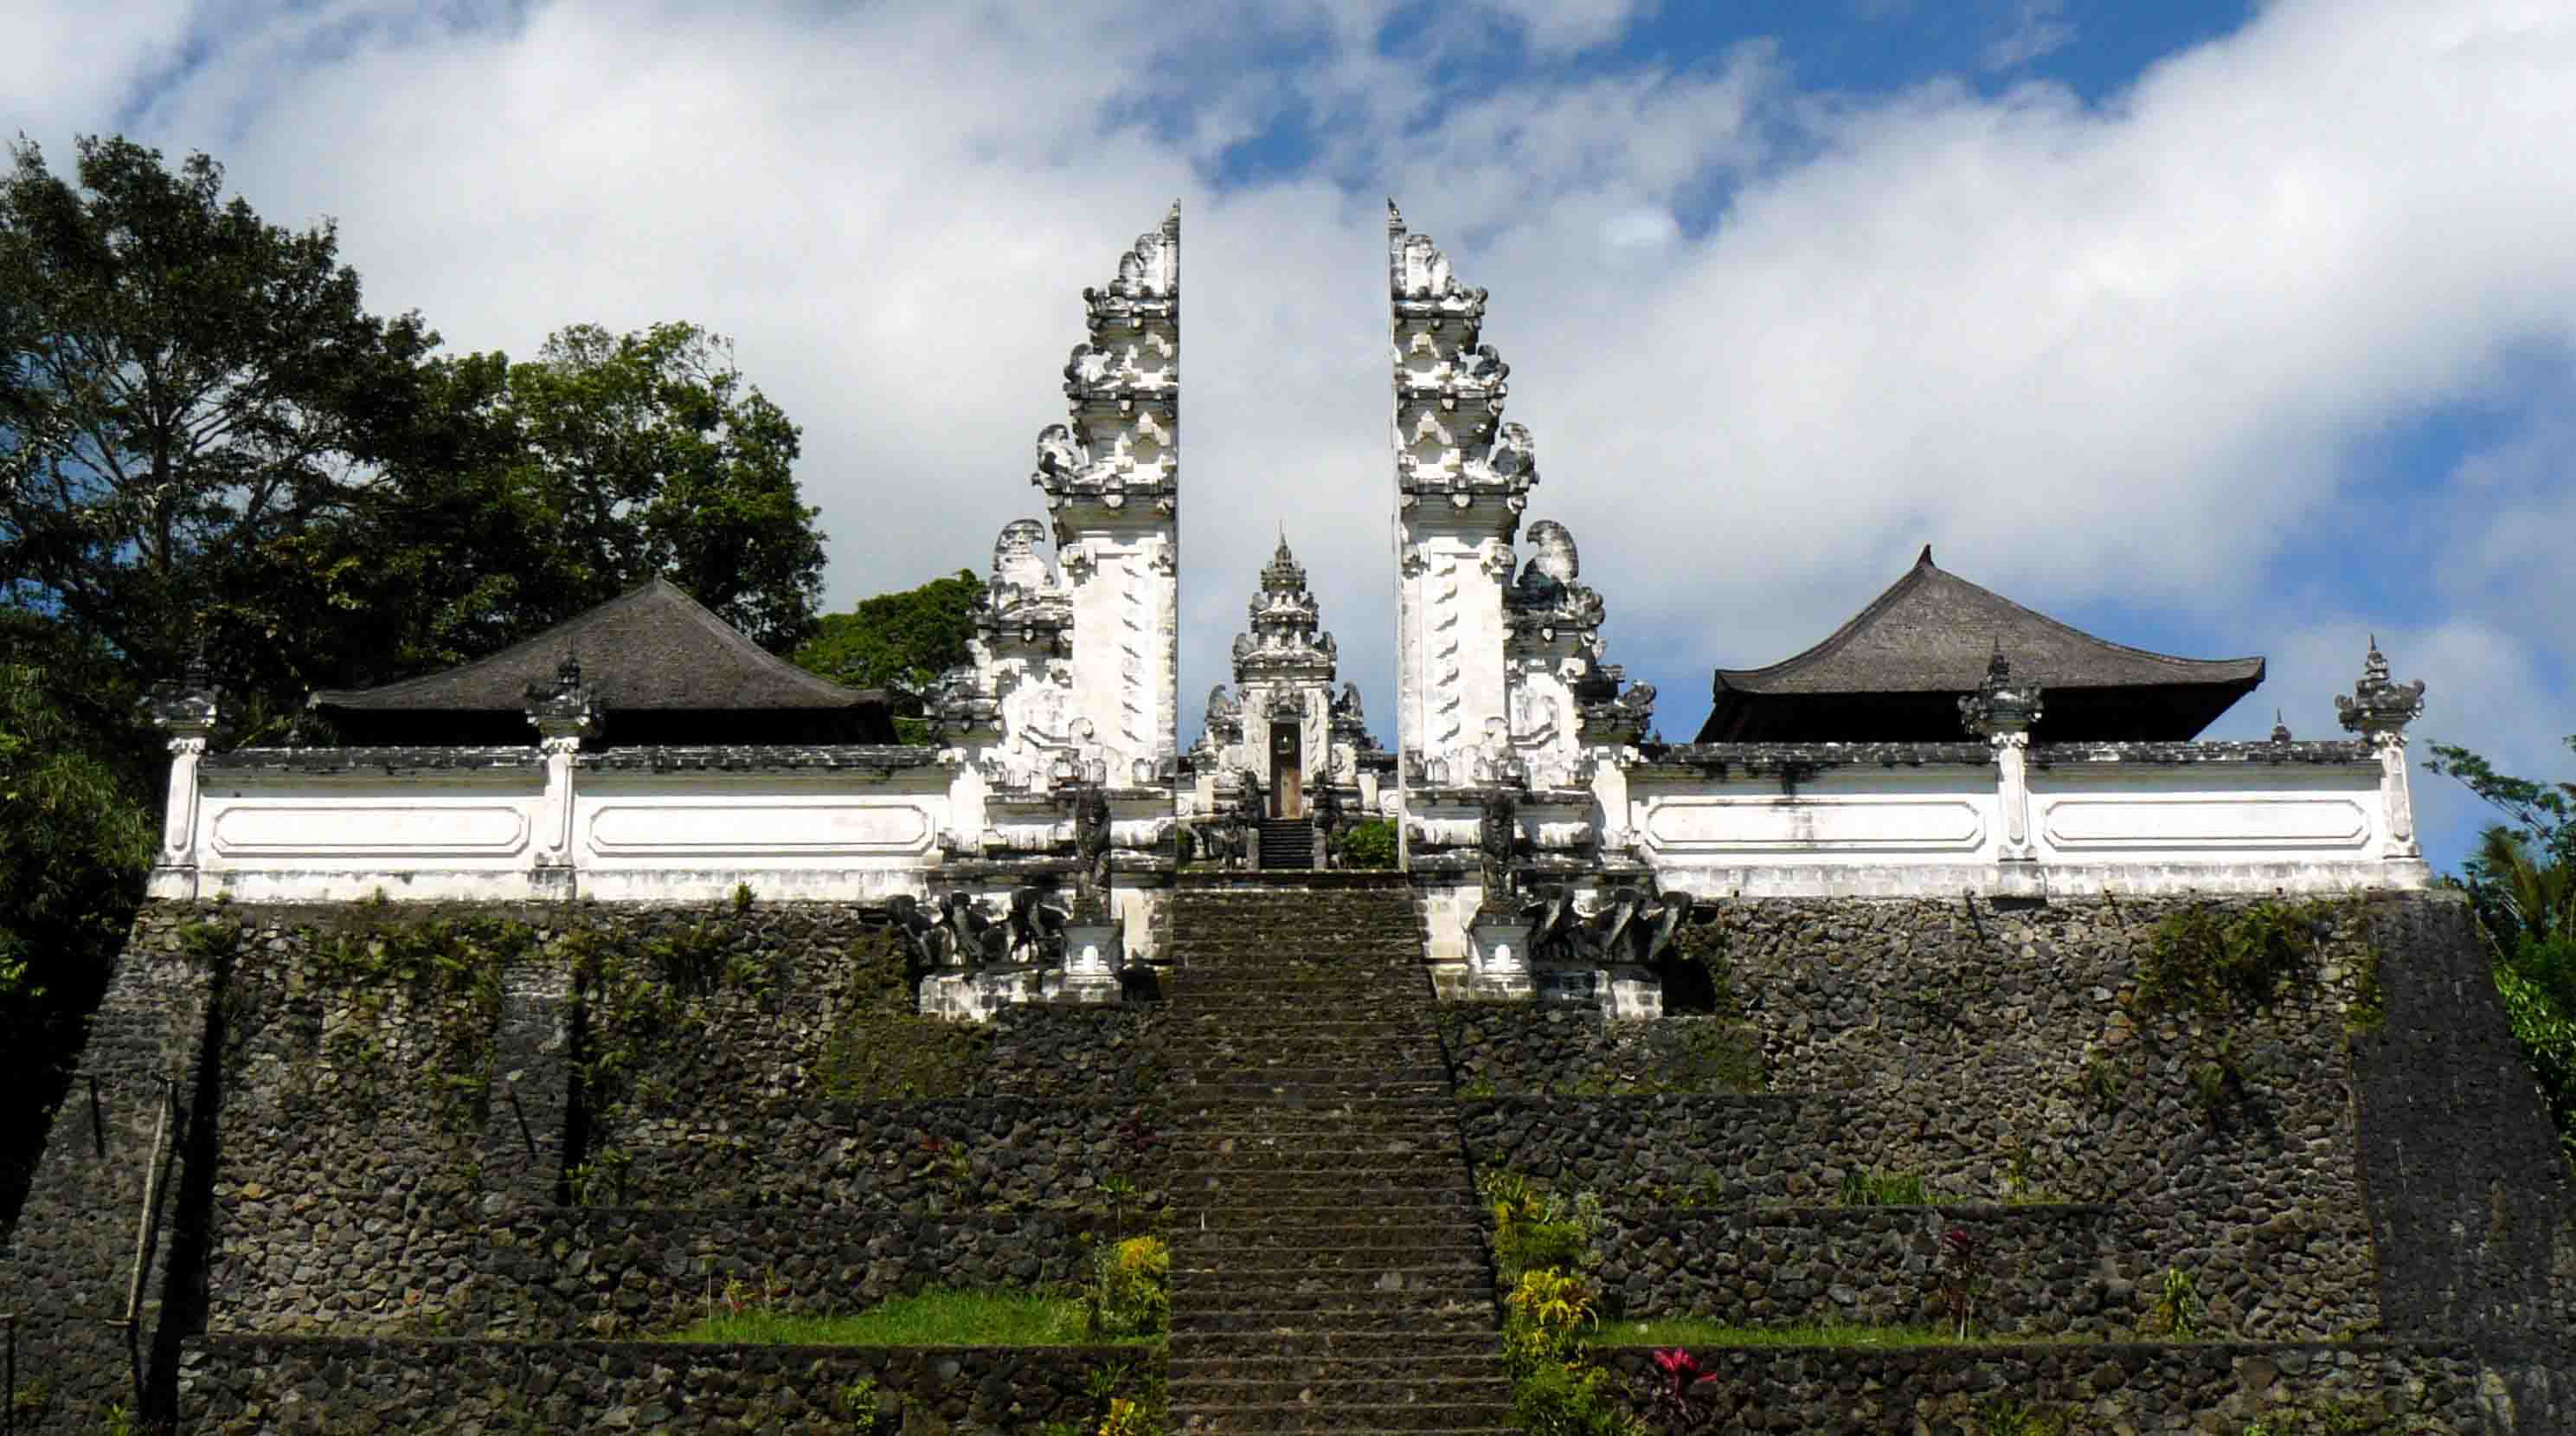 On the slopes of Mount Lempuyang sits Pura Lempuyang Luhur, otherwise known as Lempuyang Temple. T